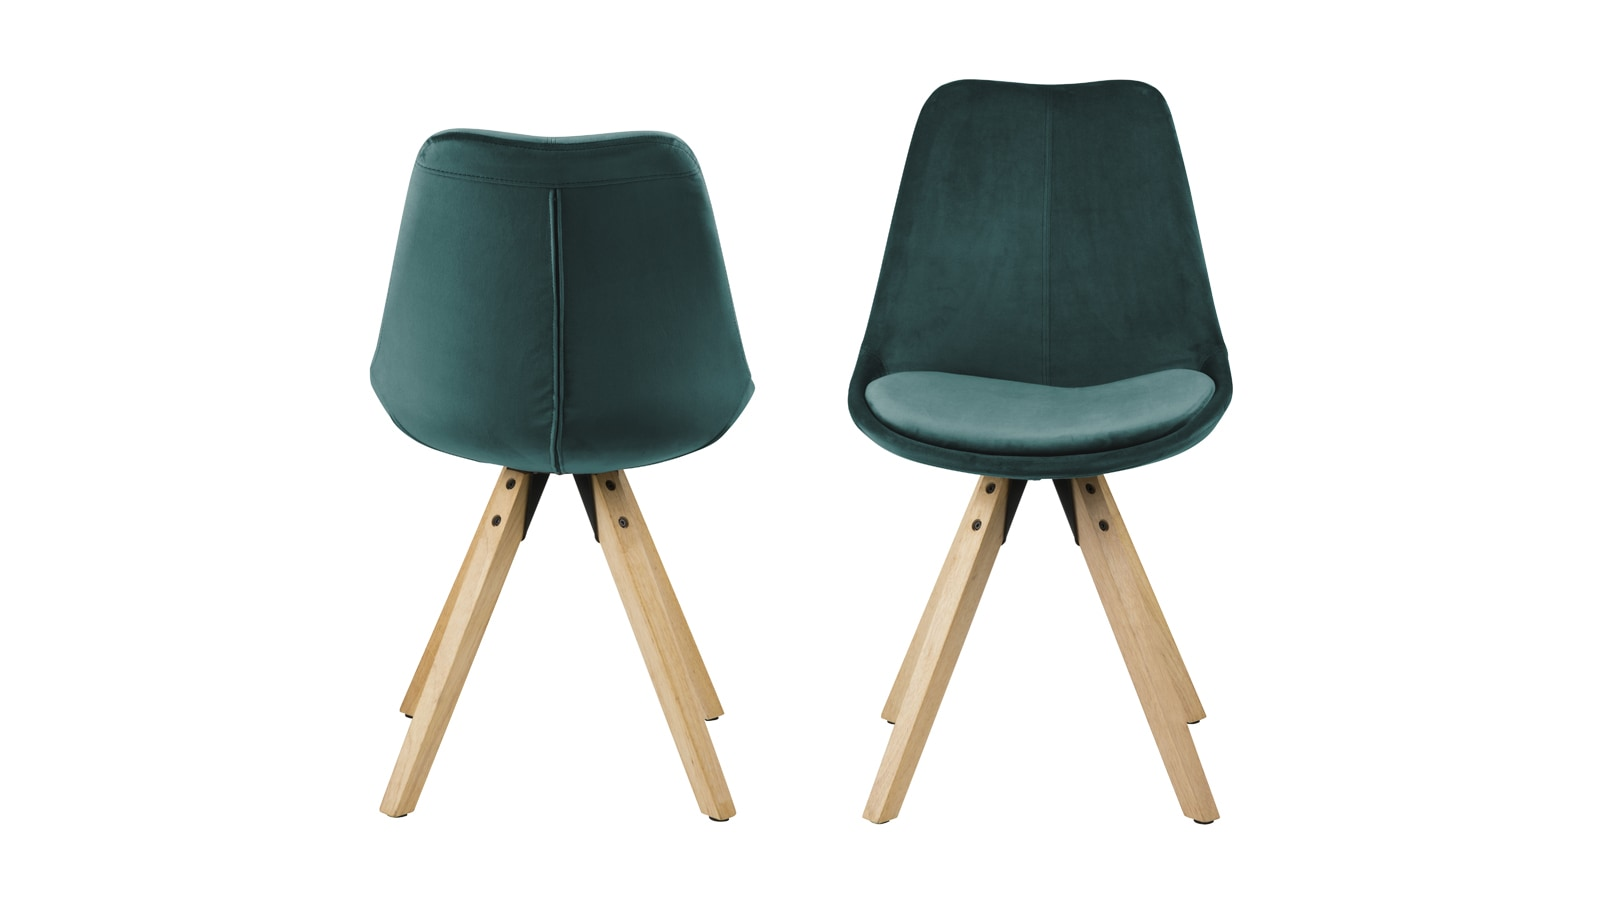 Lot De 2 Tabourets De Bar Wave à Mémoire De Forme Lot De 2 Chaises En Velours Vert Bouteille Collection Dima Homifab